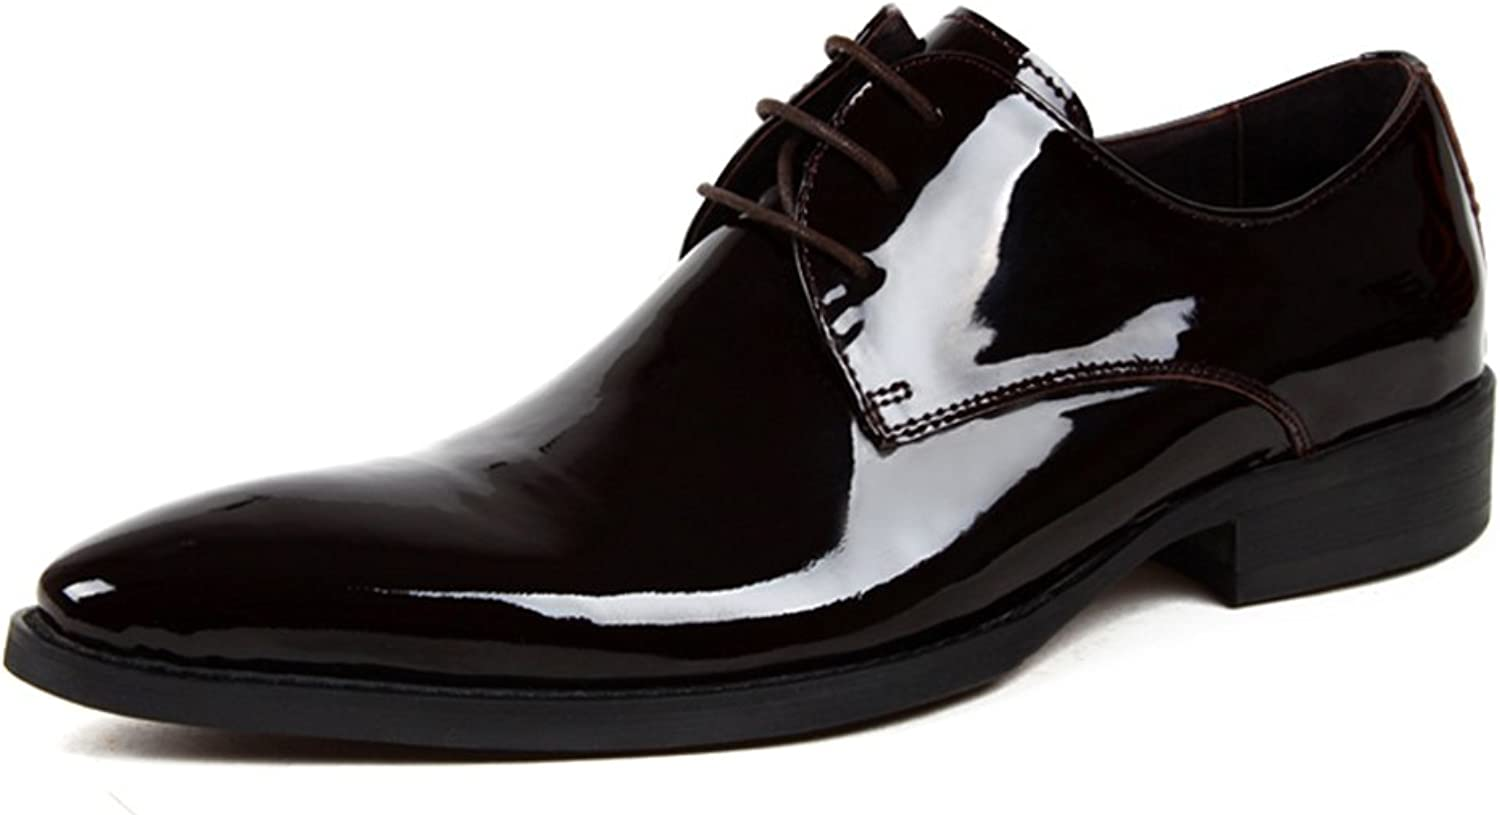 Men's leather shoes Business Wedding shoes Formal Wear Pointed Bright shoes Bridegroom Marry